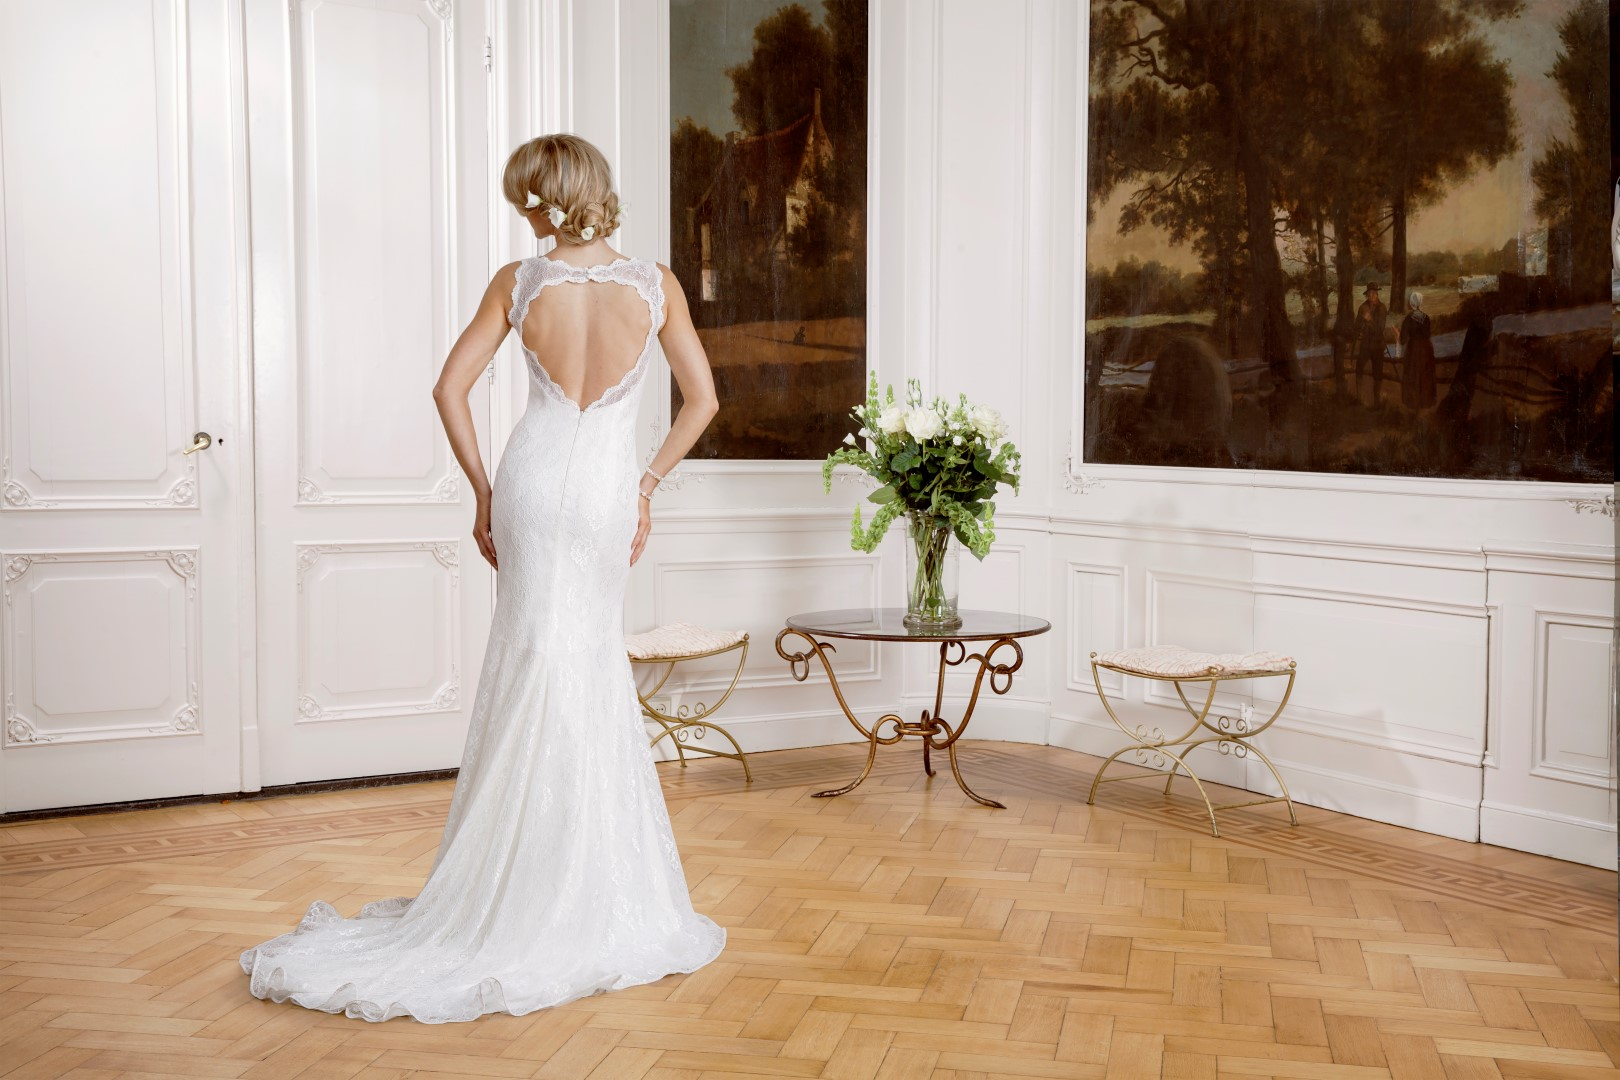 ramona_back_shoot-modeca-collection-20153243def-copy-large